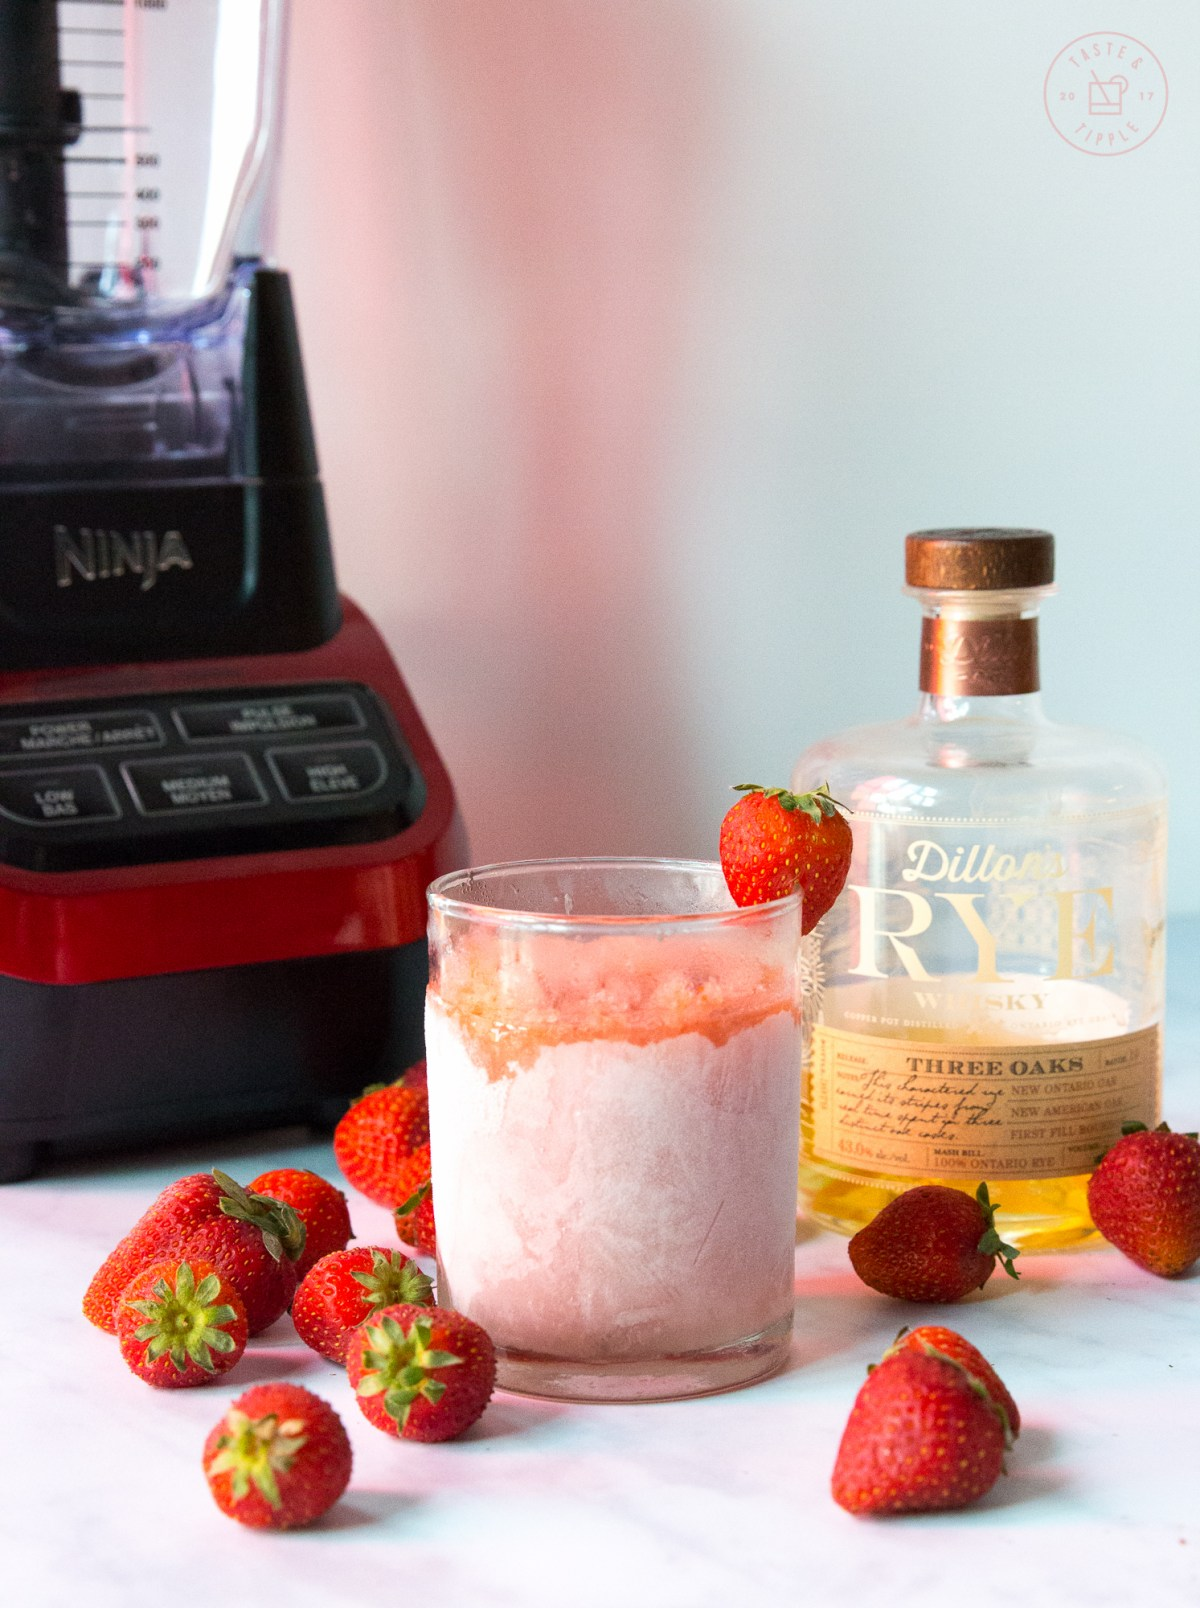 Straberry Rhubarb Slushie | Taste and Tipple